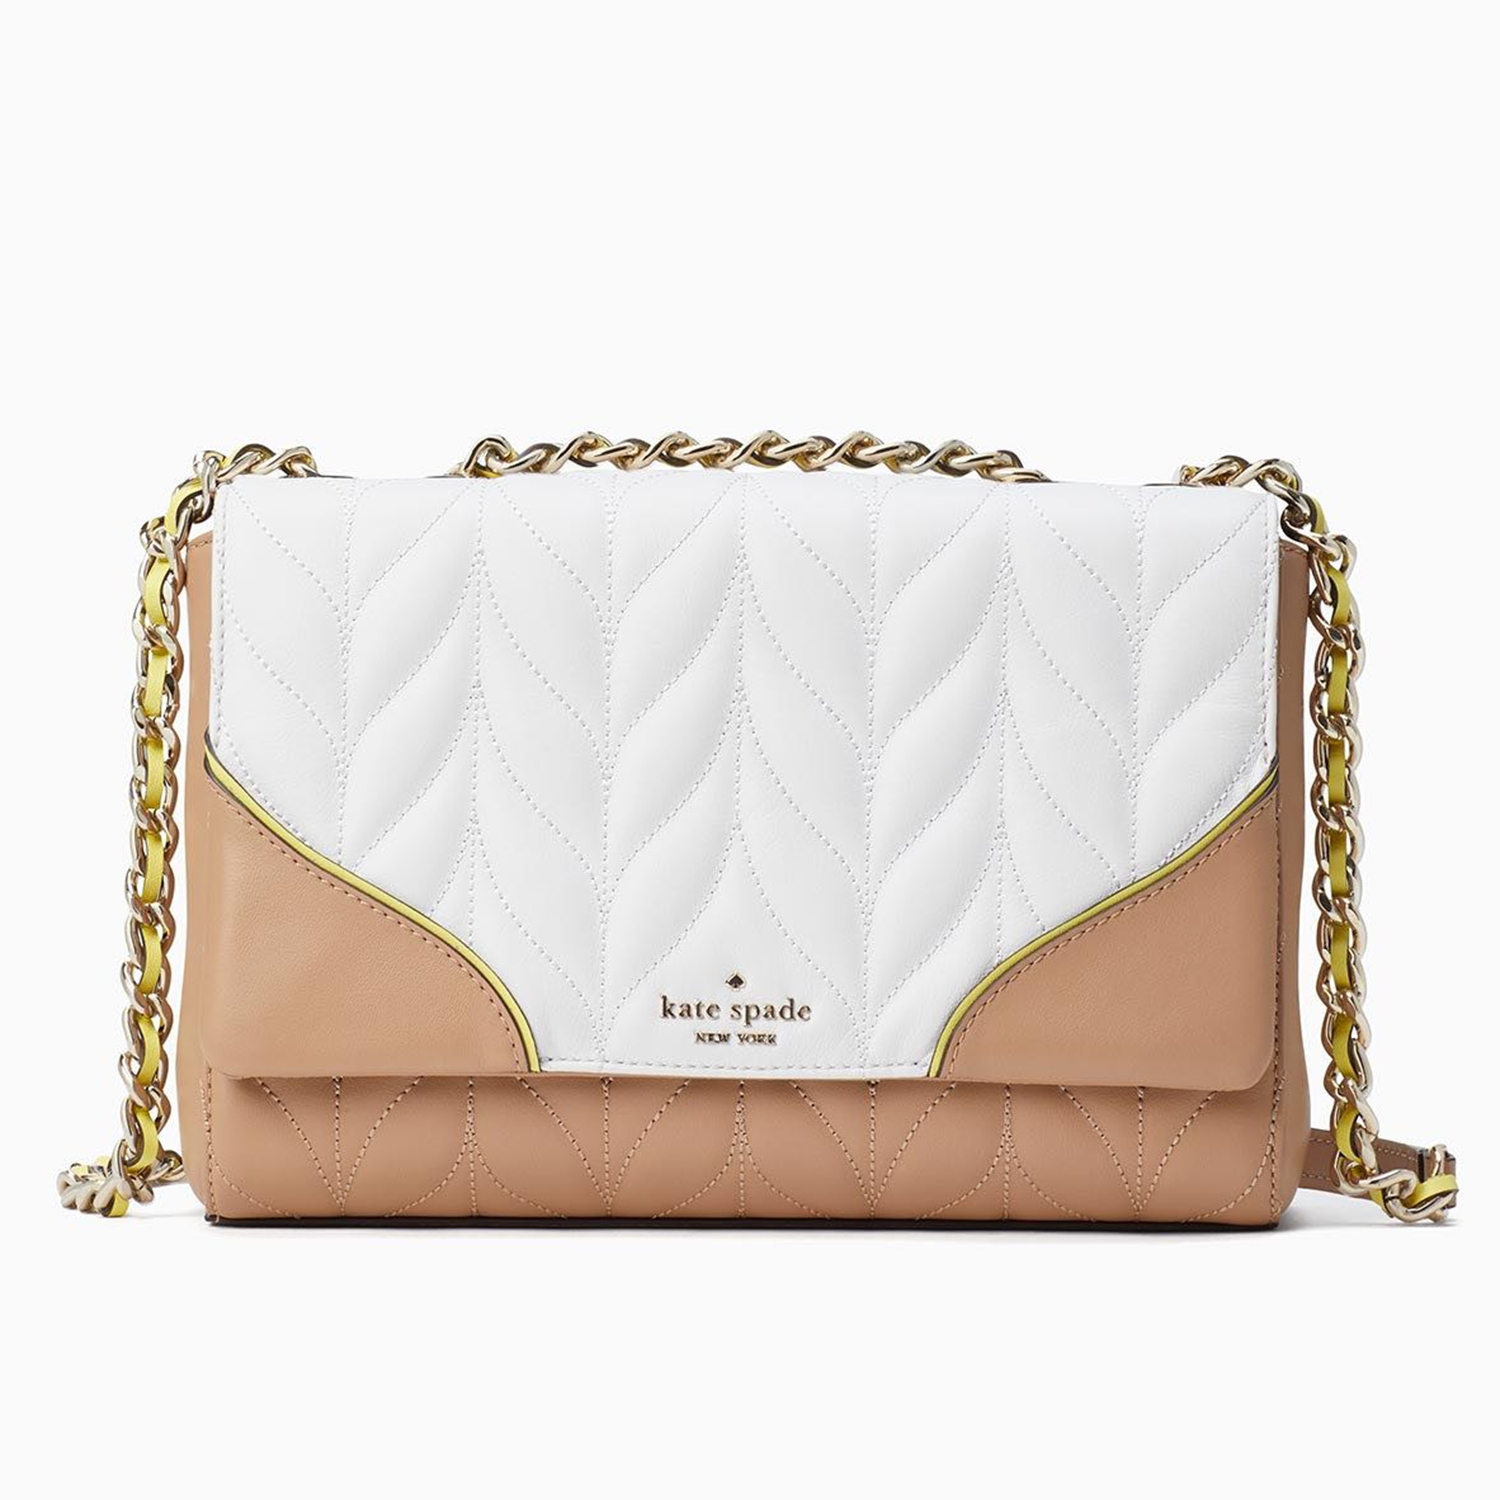 Briar Lane Quilted Emelyn Kate Spade